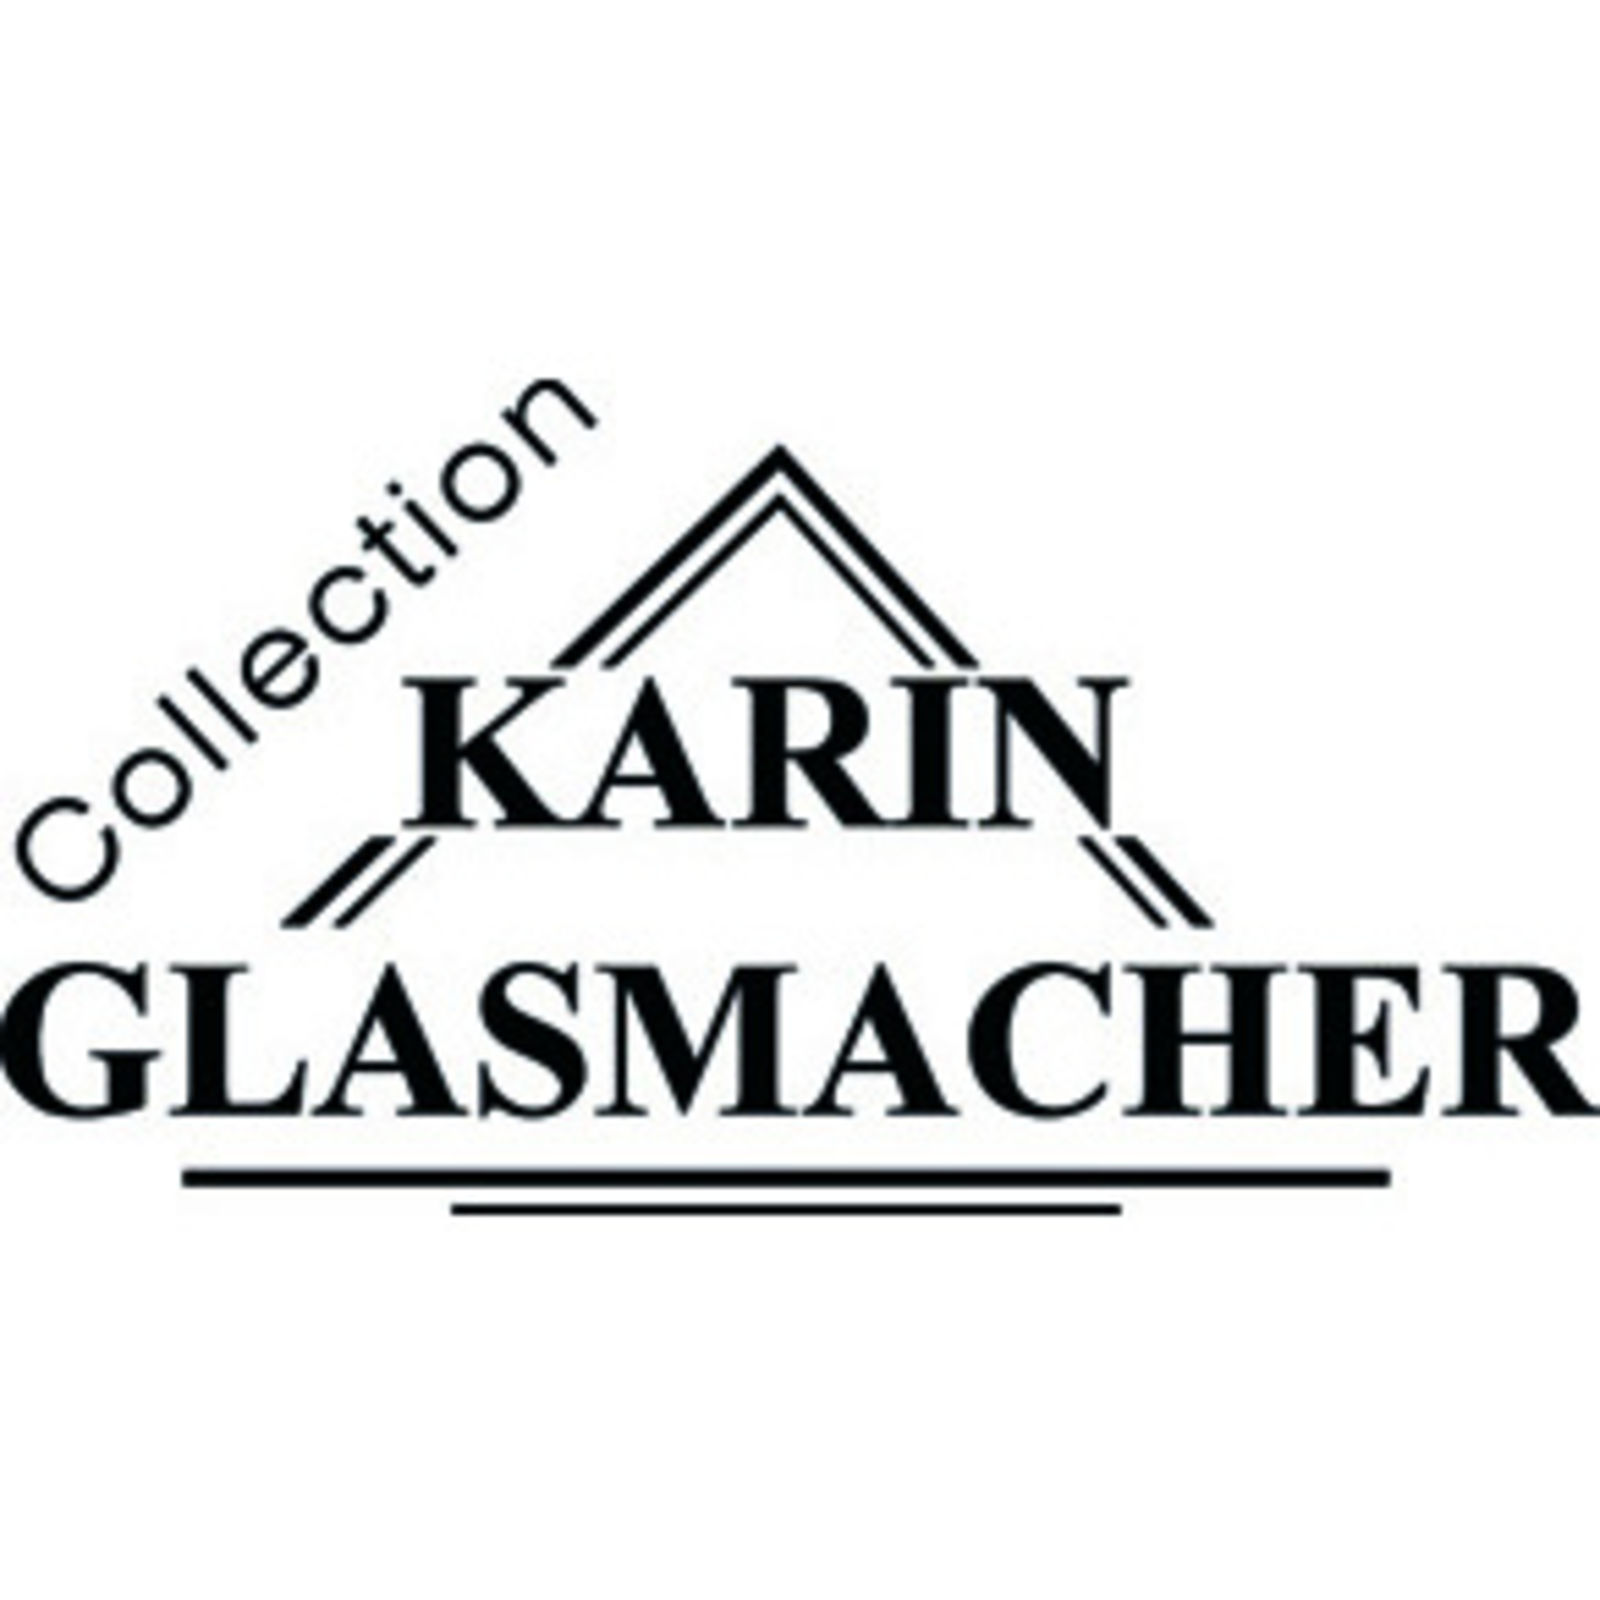 Collection KARIN GLASMACHER